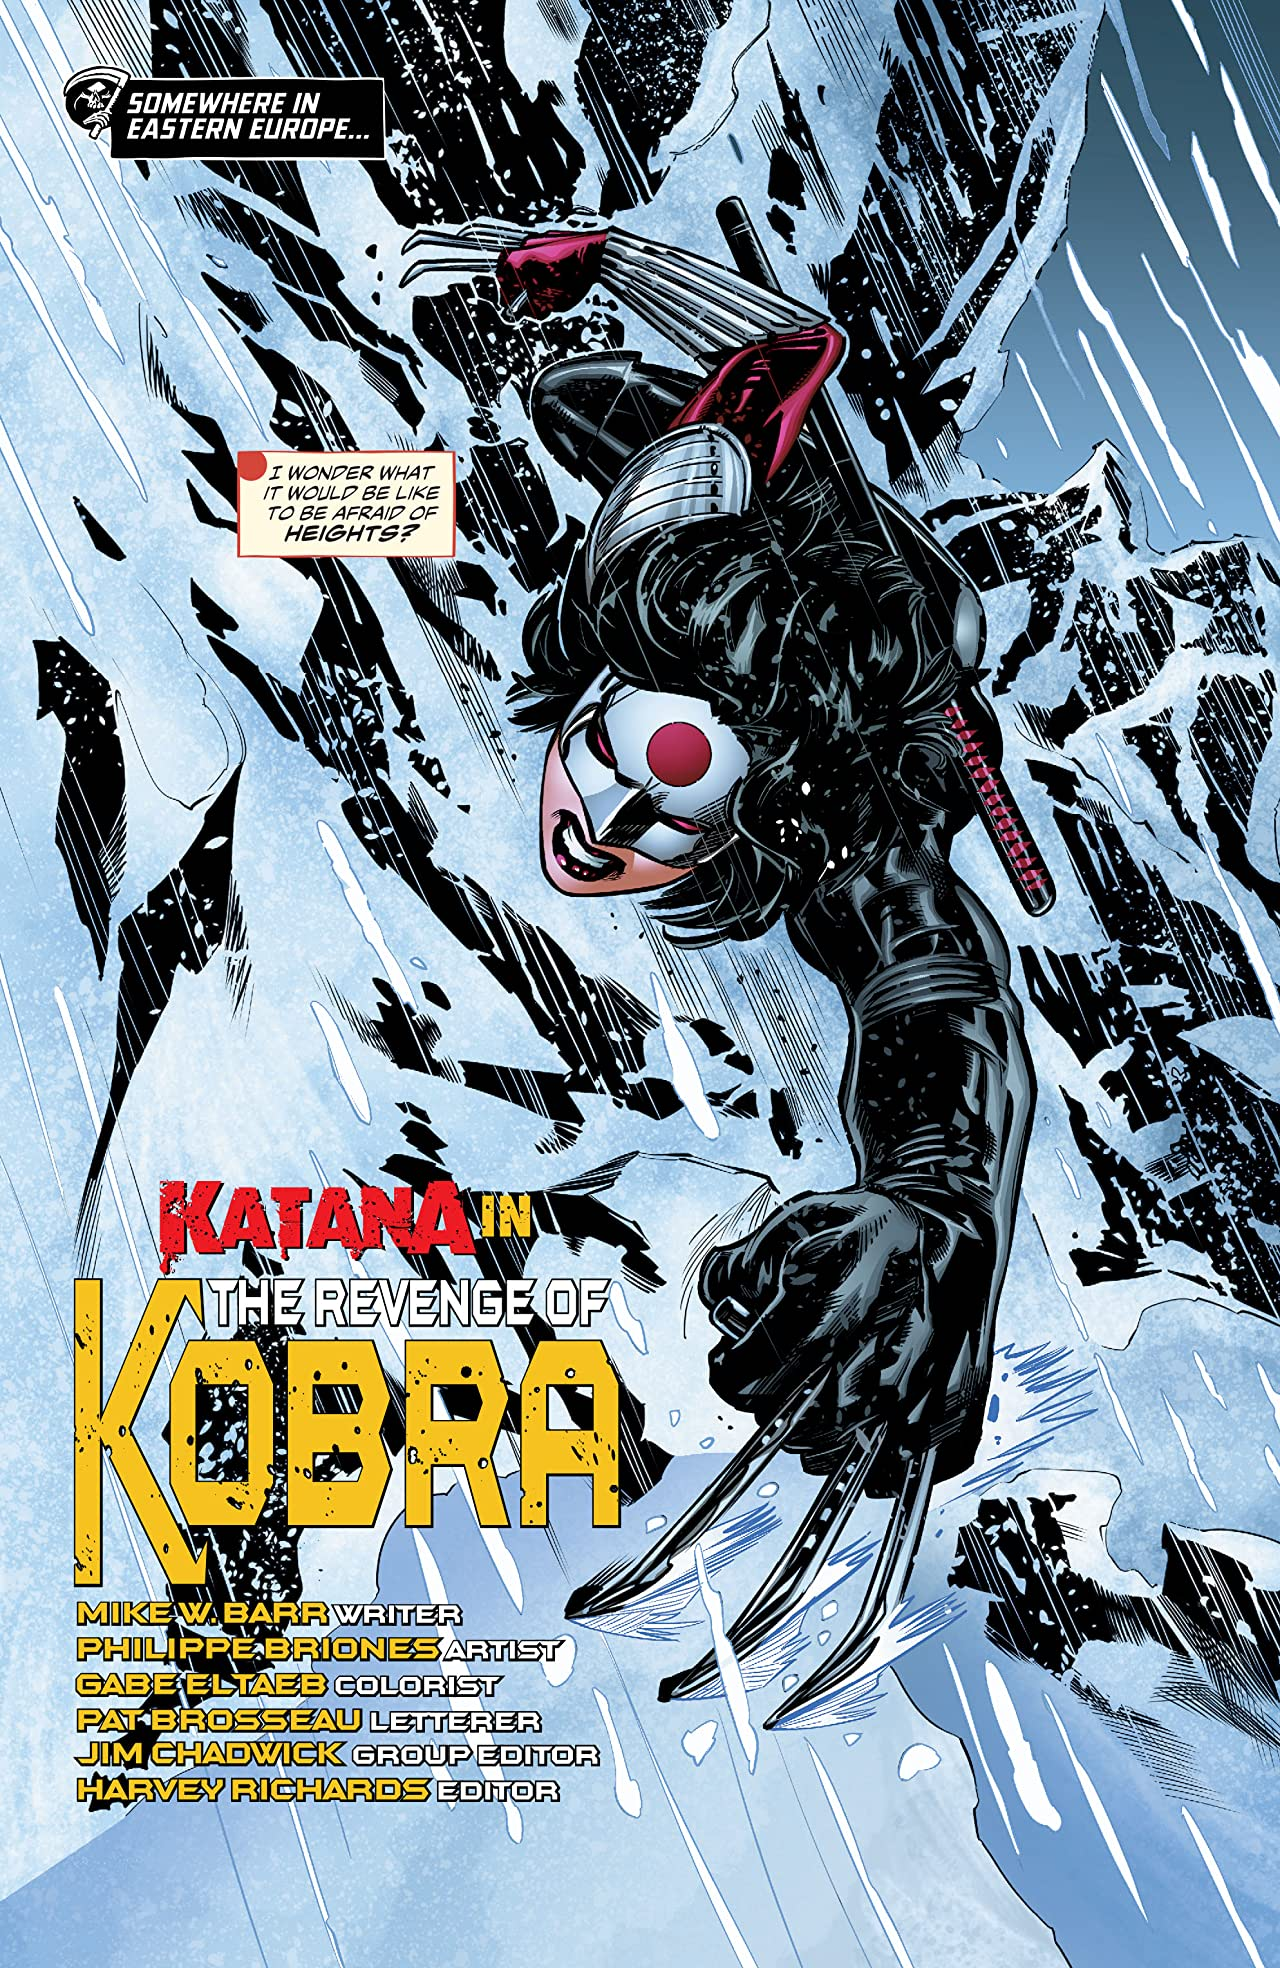 Suicide Squad: Katana: The Revenge of Kobra